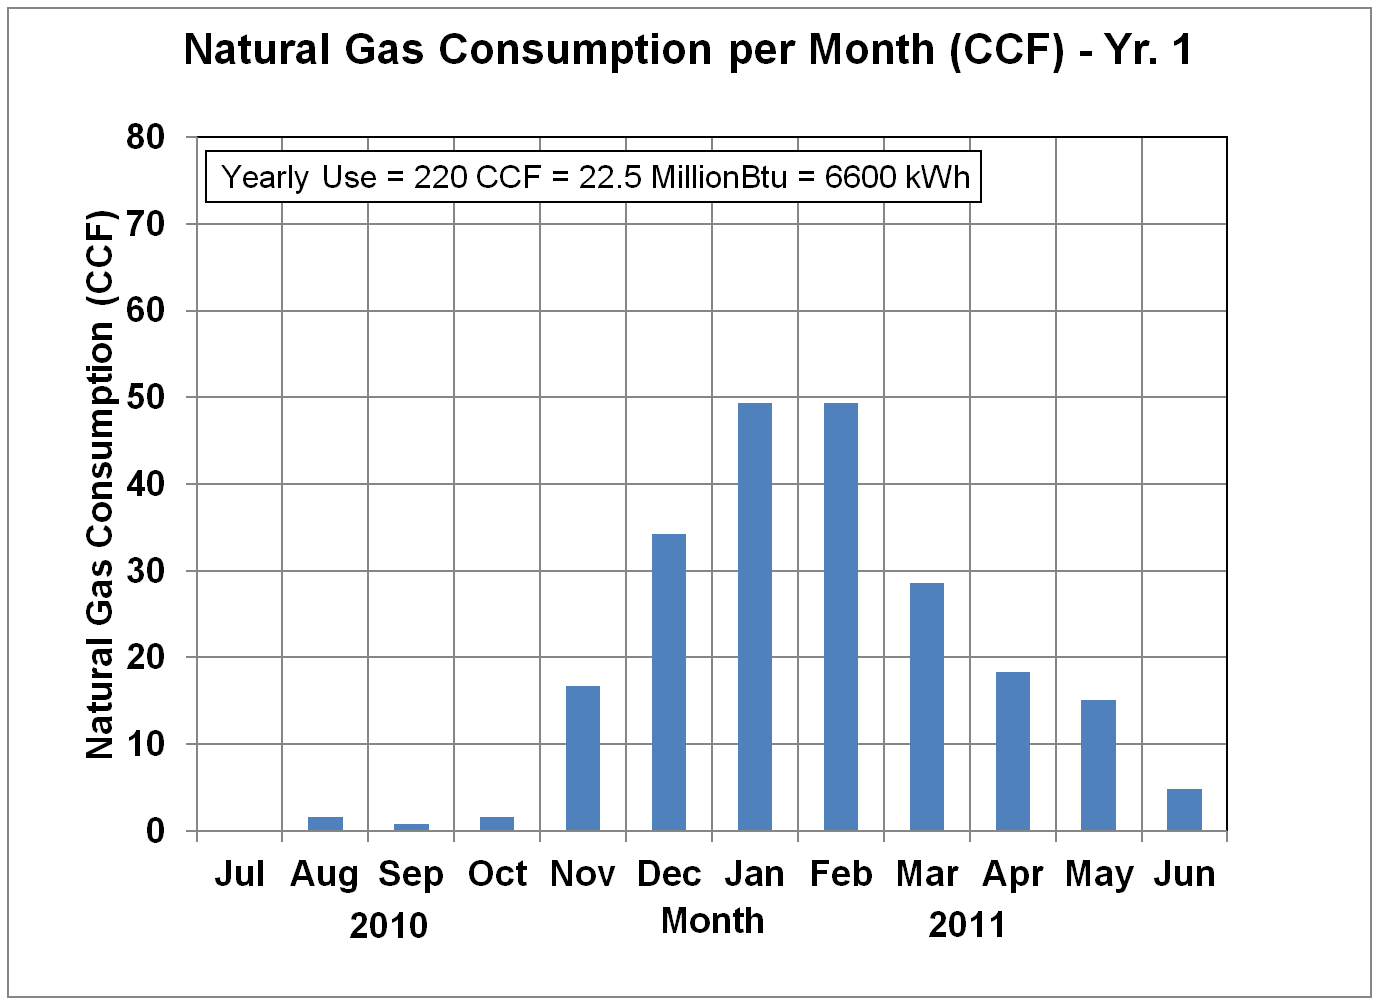 Natural Gas Usage in CCF - Yr. 1